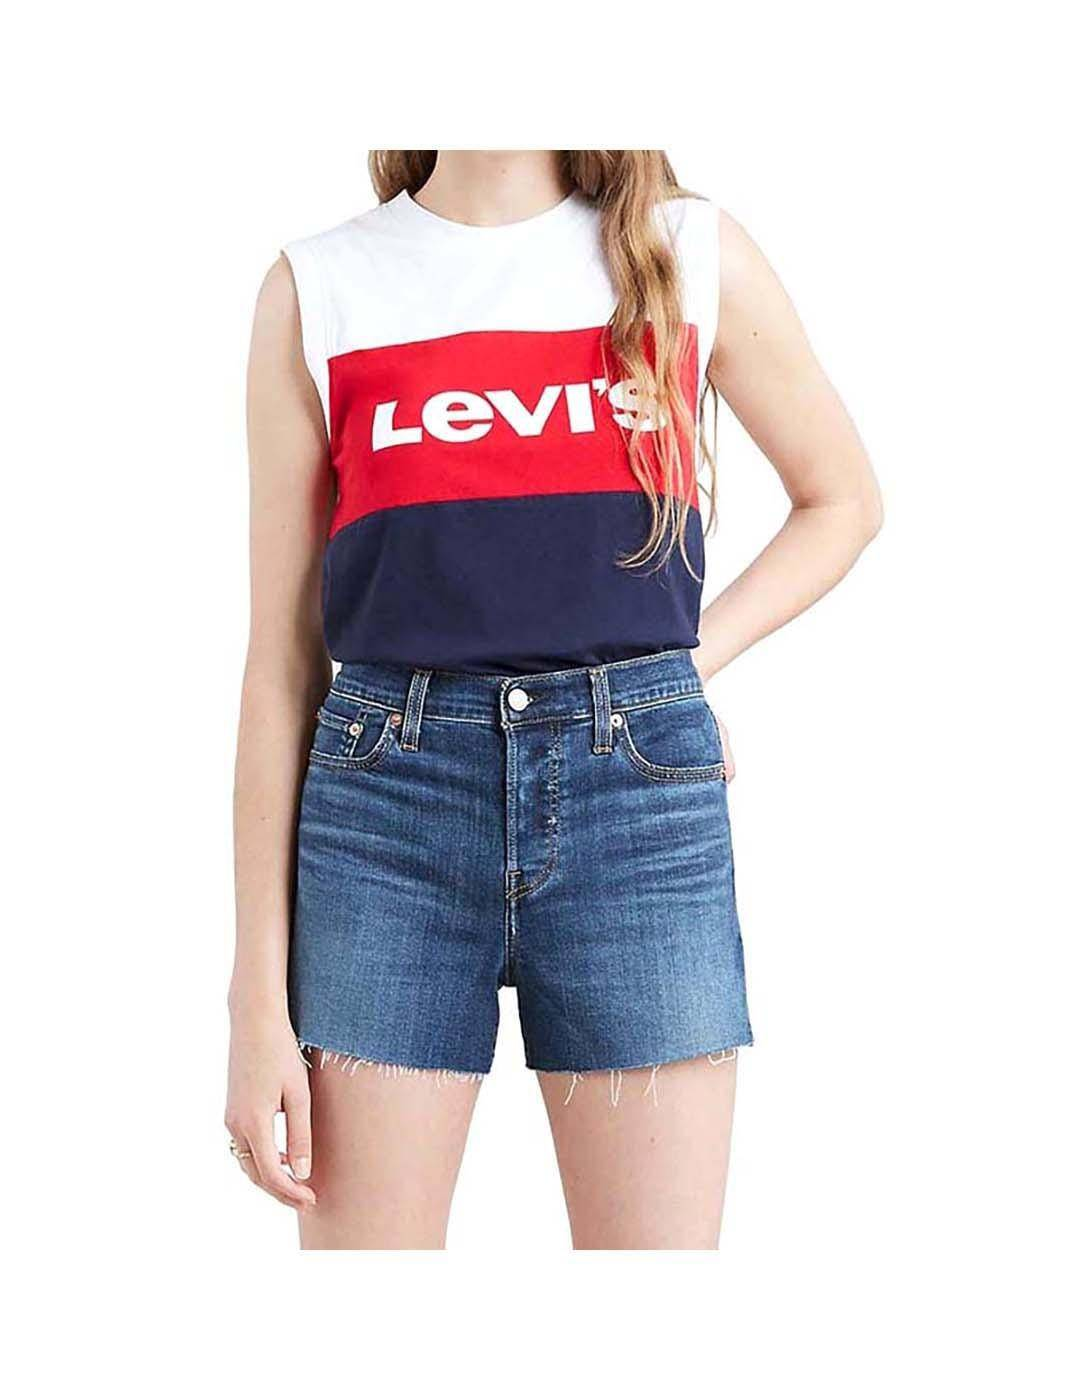 Levis Top Levis On Tour Cb Tank Colorblock Blanco Mujer - M